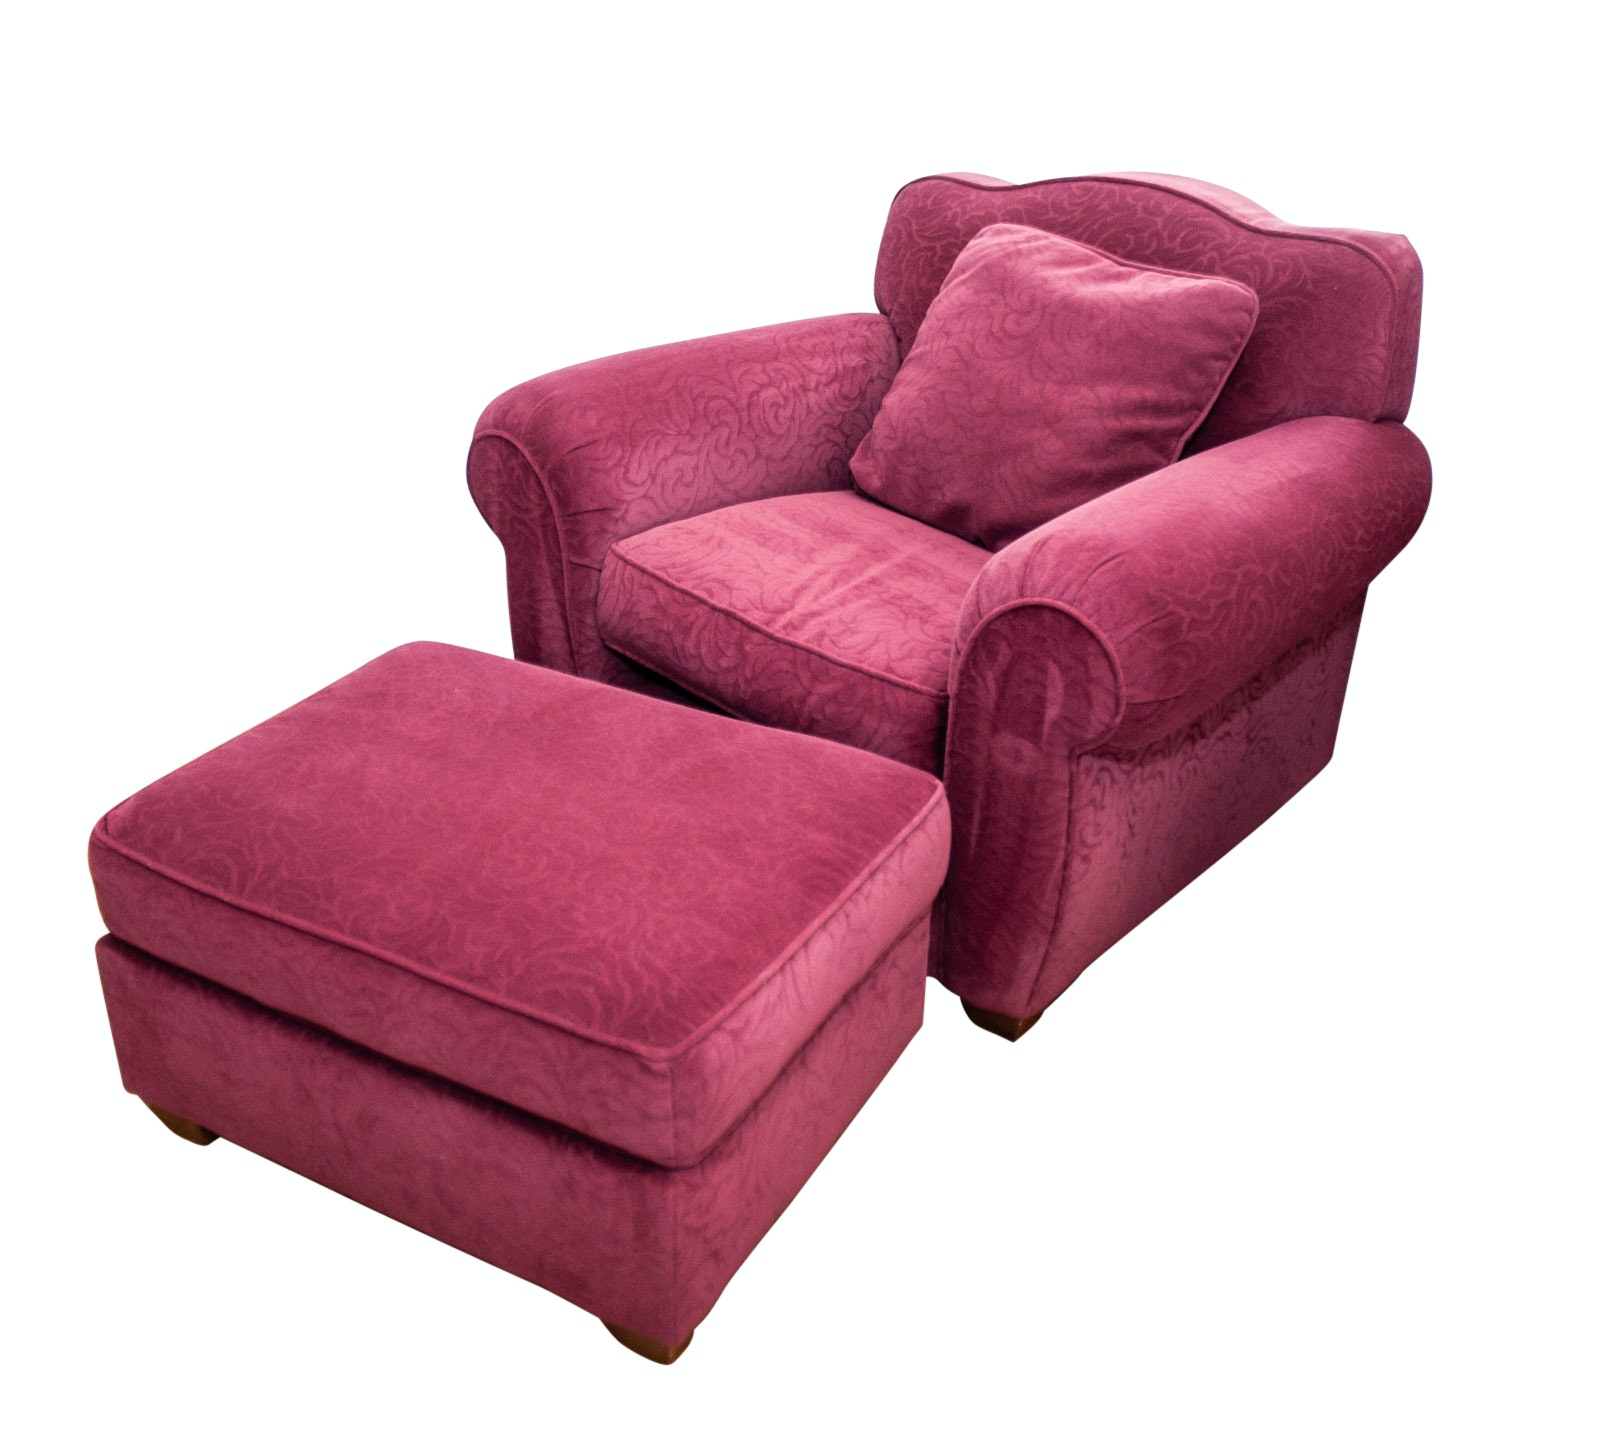 Macy's Bauhaus Red Chair and Ottoman